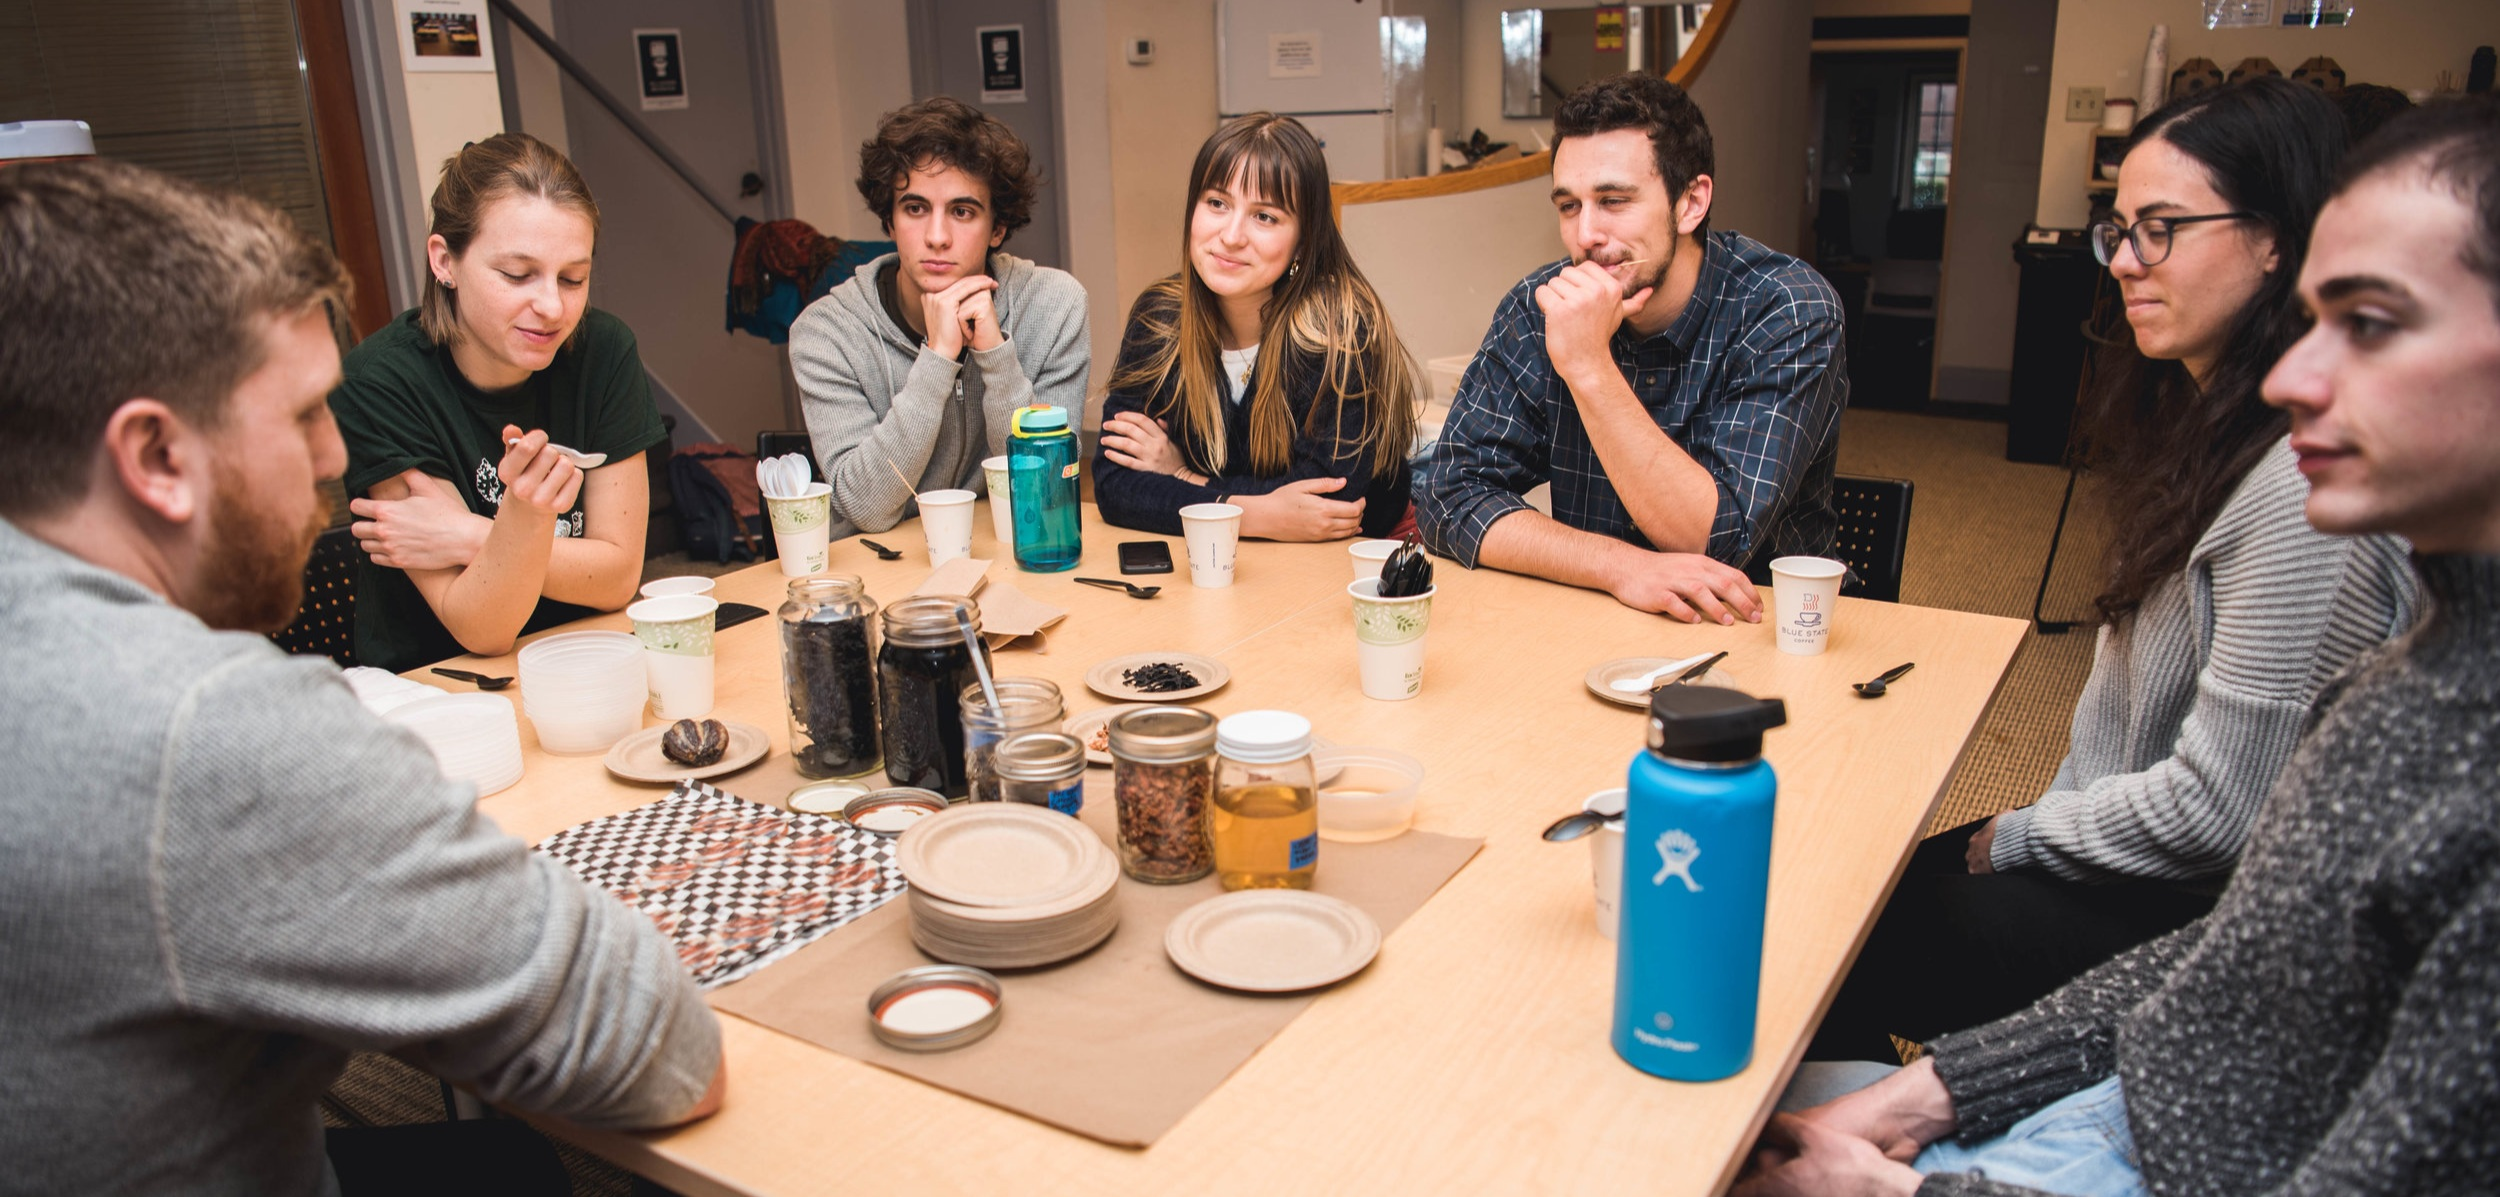 Students around table with food products